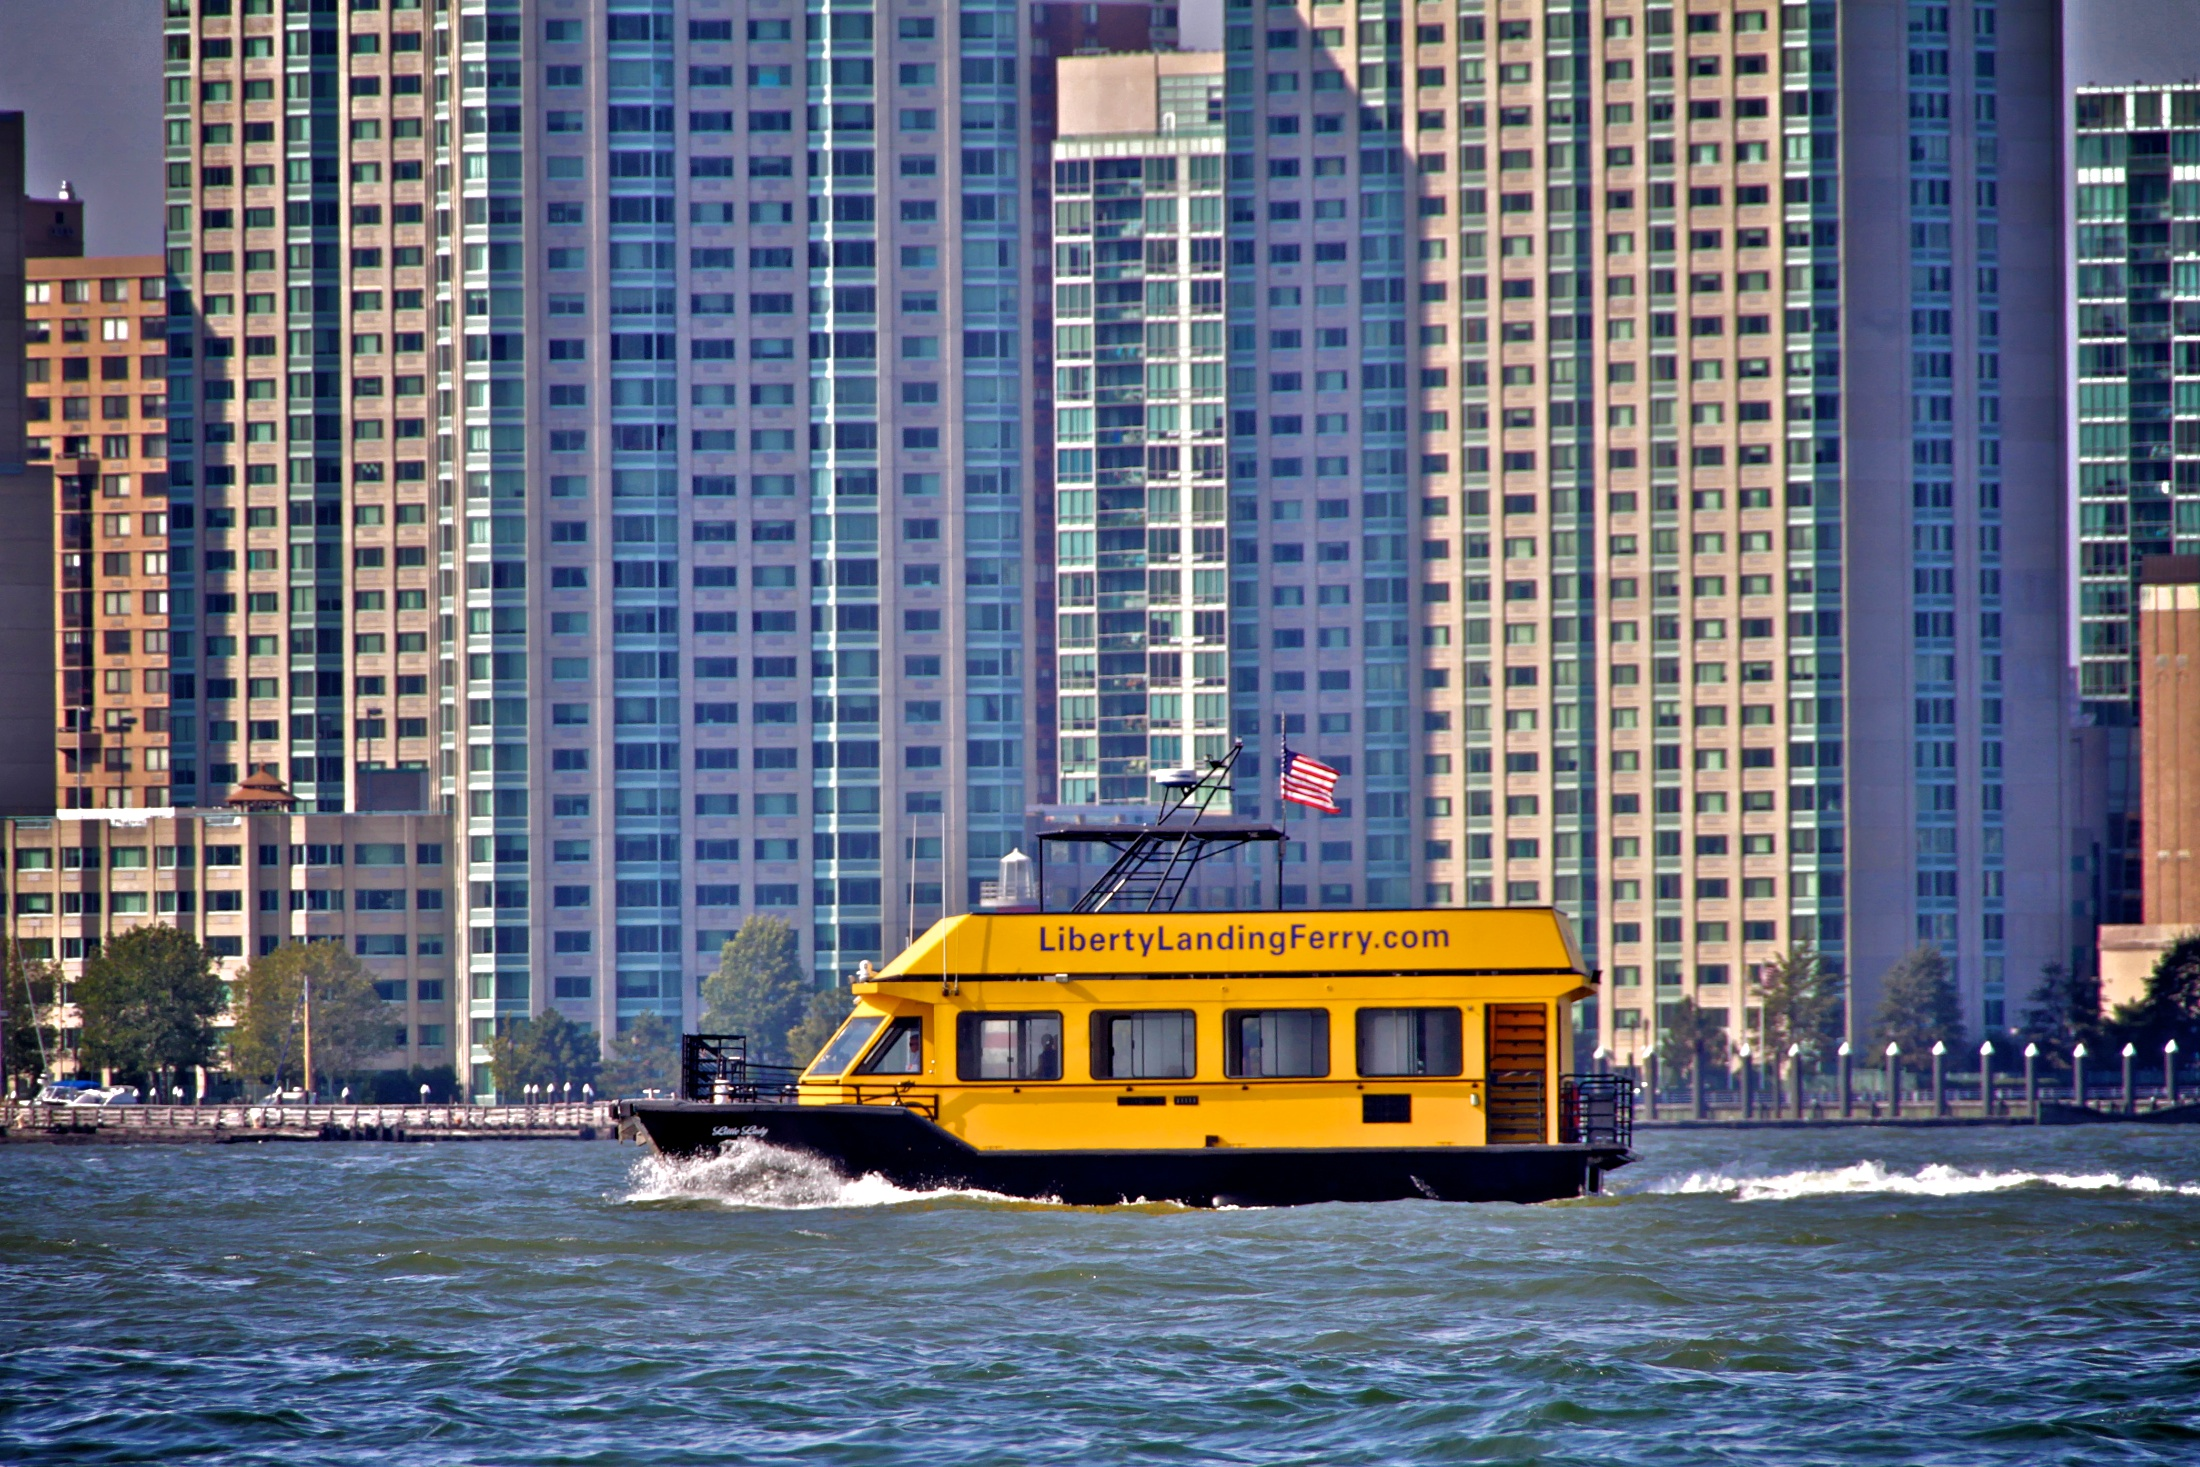 Liberty Landing Ferry – BIG-APPLE.TV